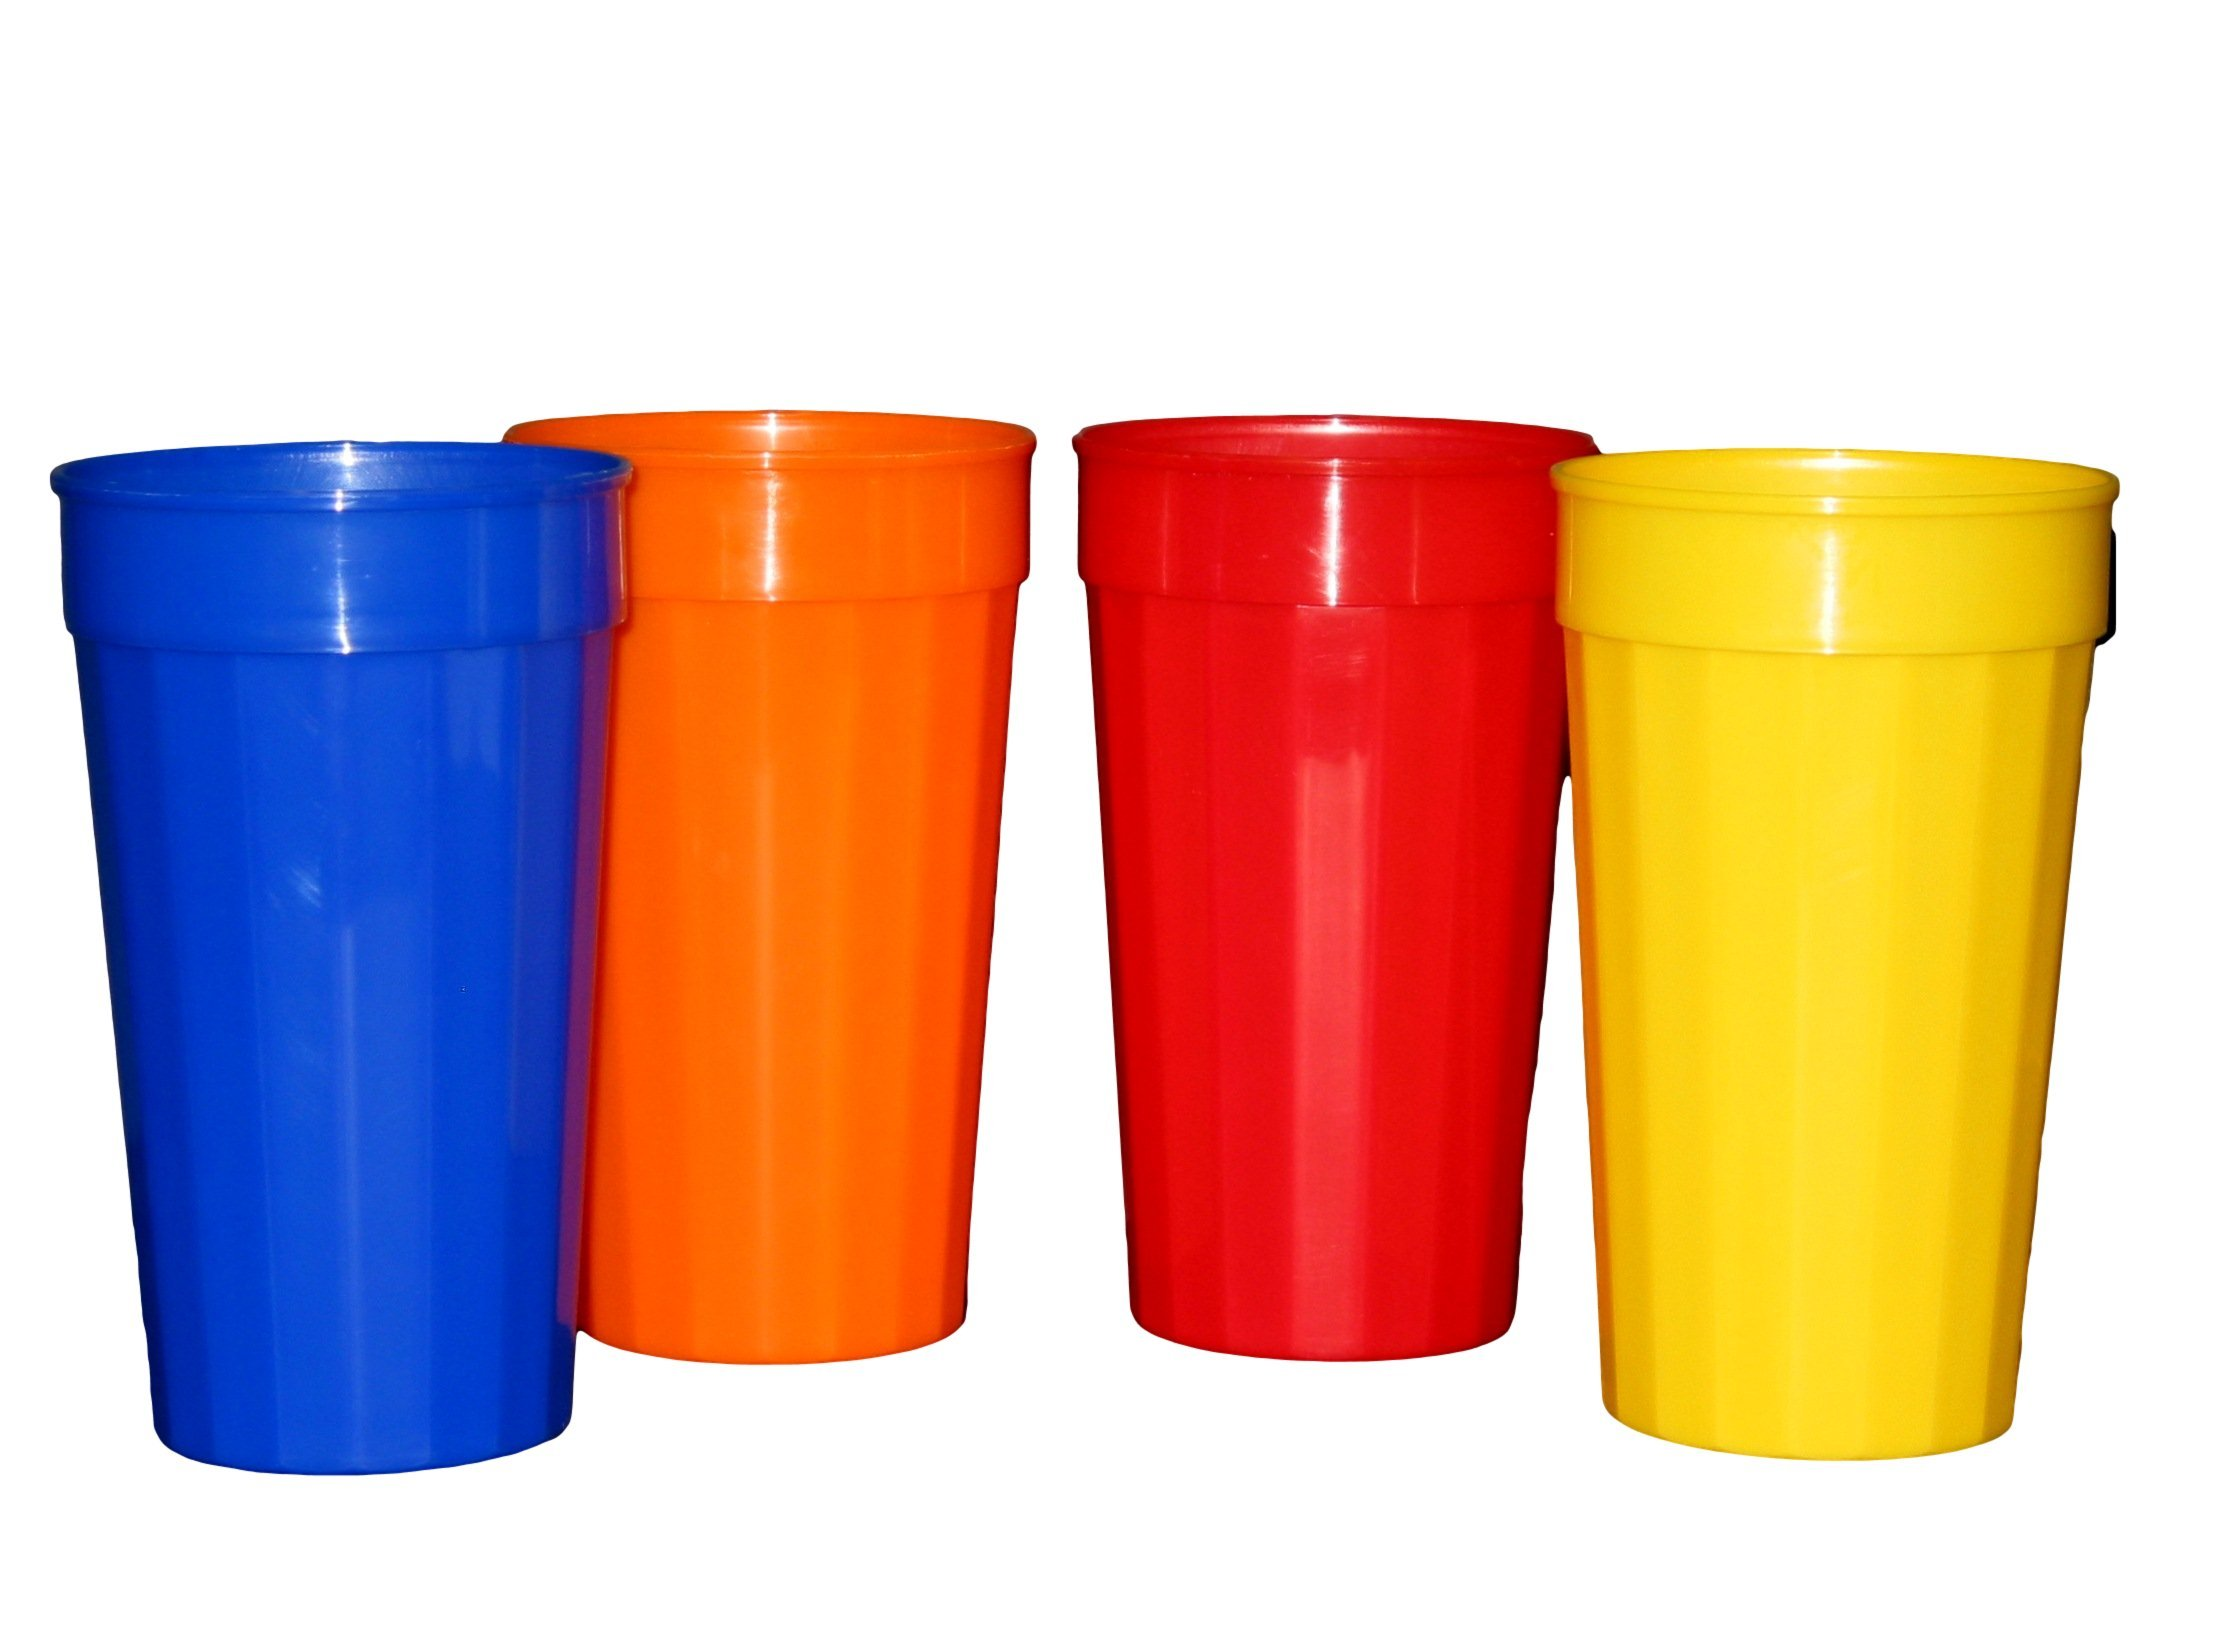 Plastic Fluted Drinking Tumblers, Large 32 Ounce, Pack 12 (3 Each Red, Blue, Orange, Yellow,